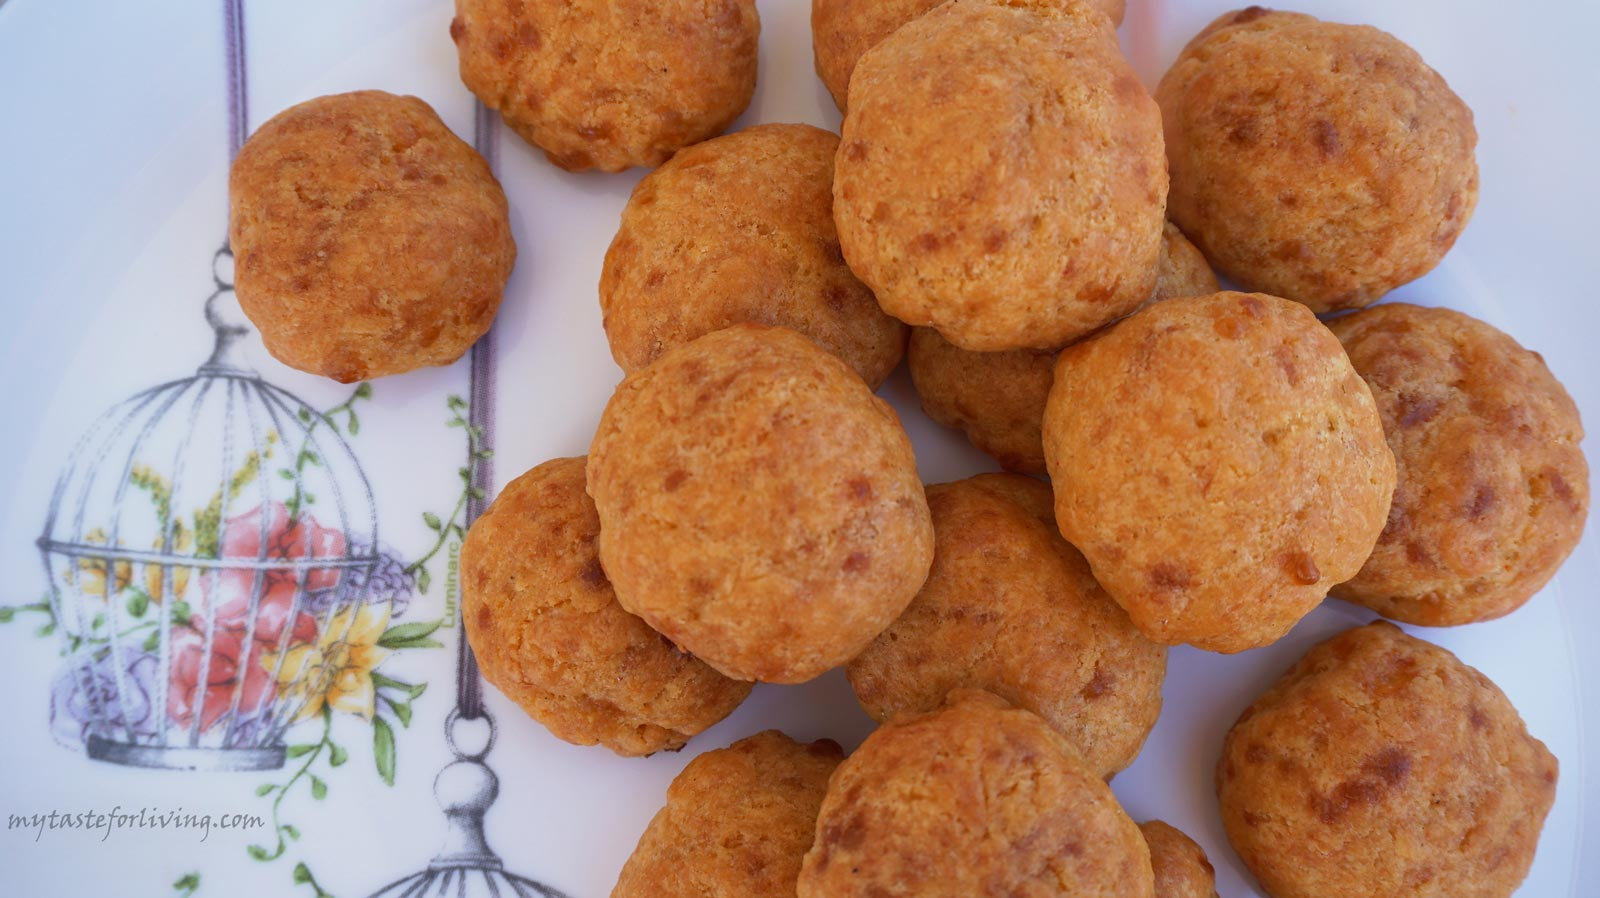 Delicious and appetizing baked yellow cheese balls, suitable for a party, snack, picnic or appetizer. They prepare quickly and are irresistibly delicious.